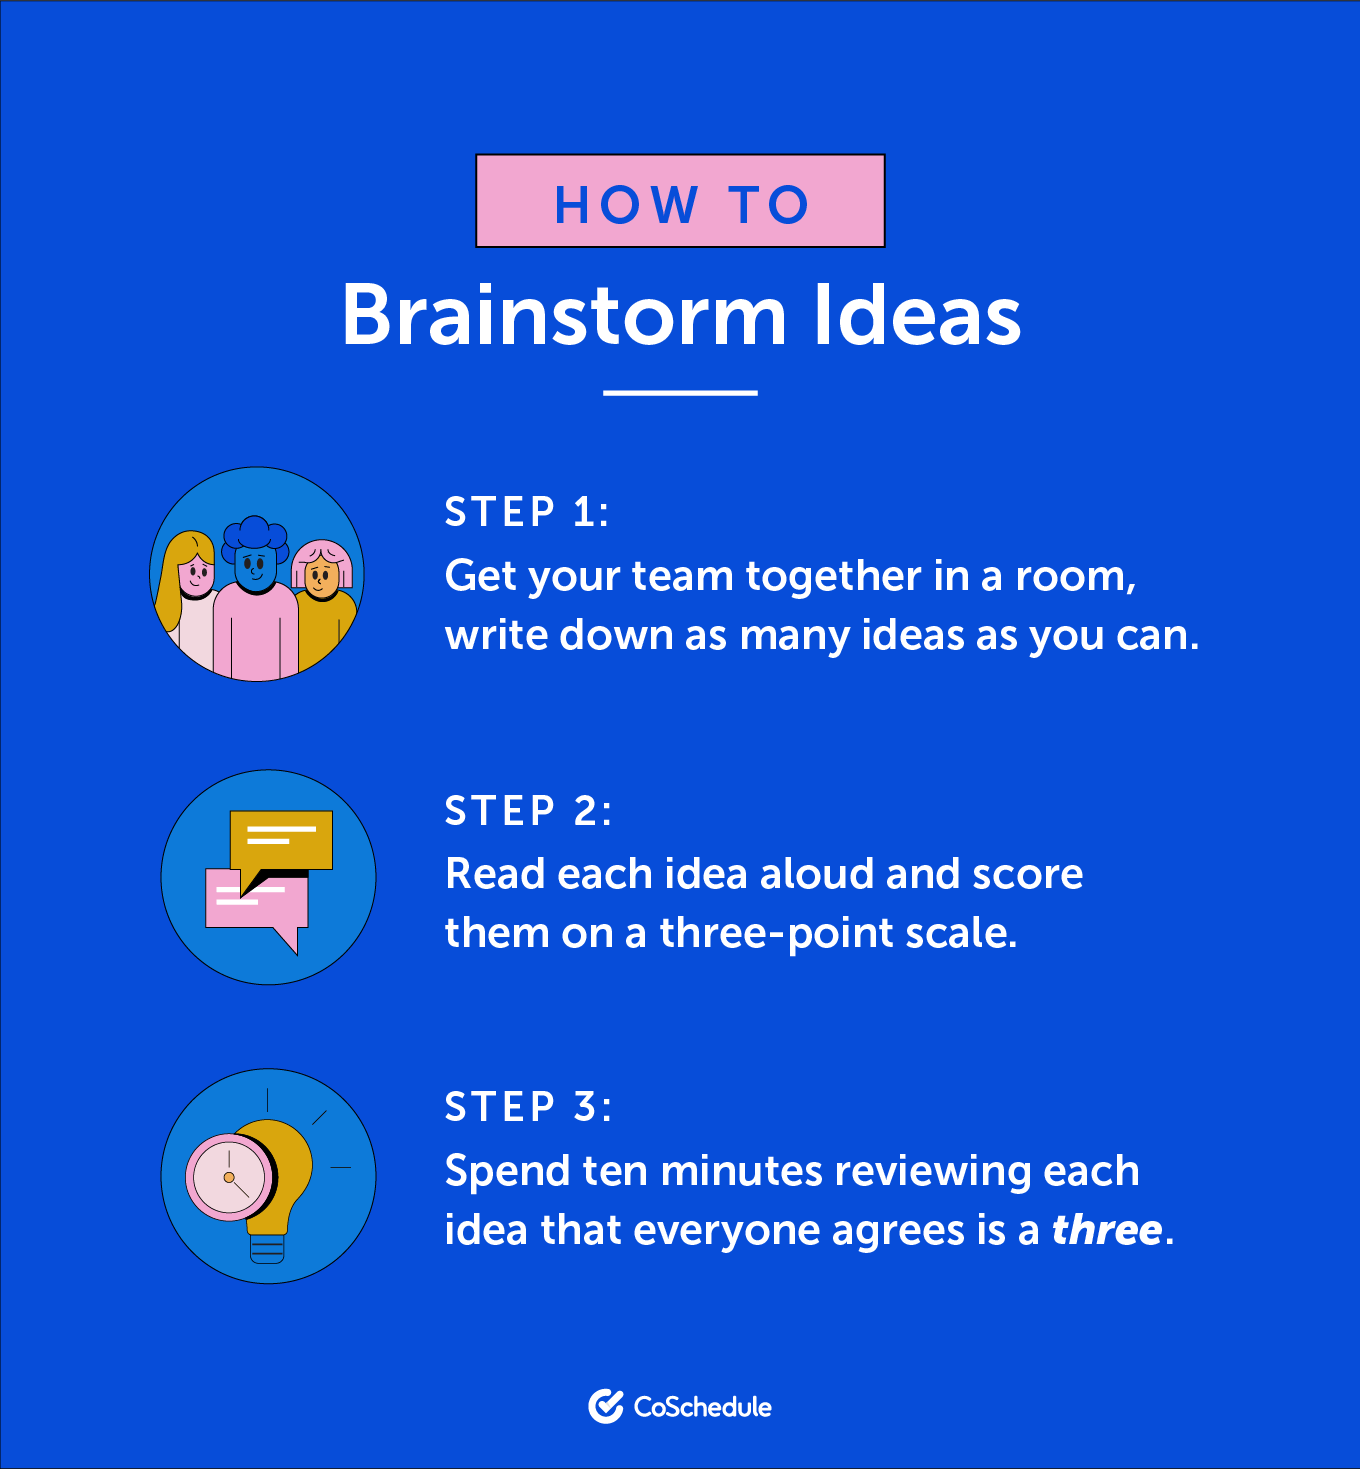 Steps to brainstorming